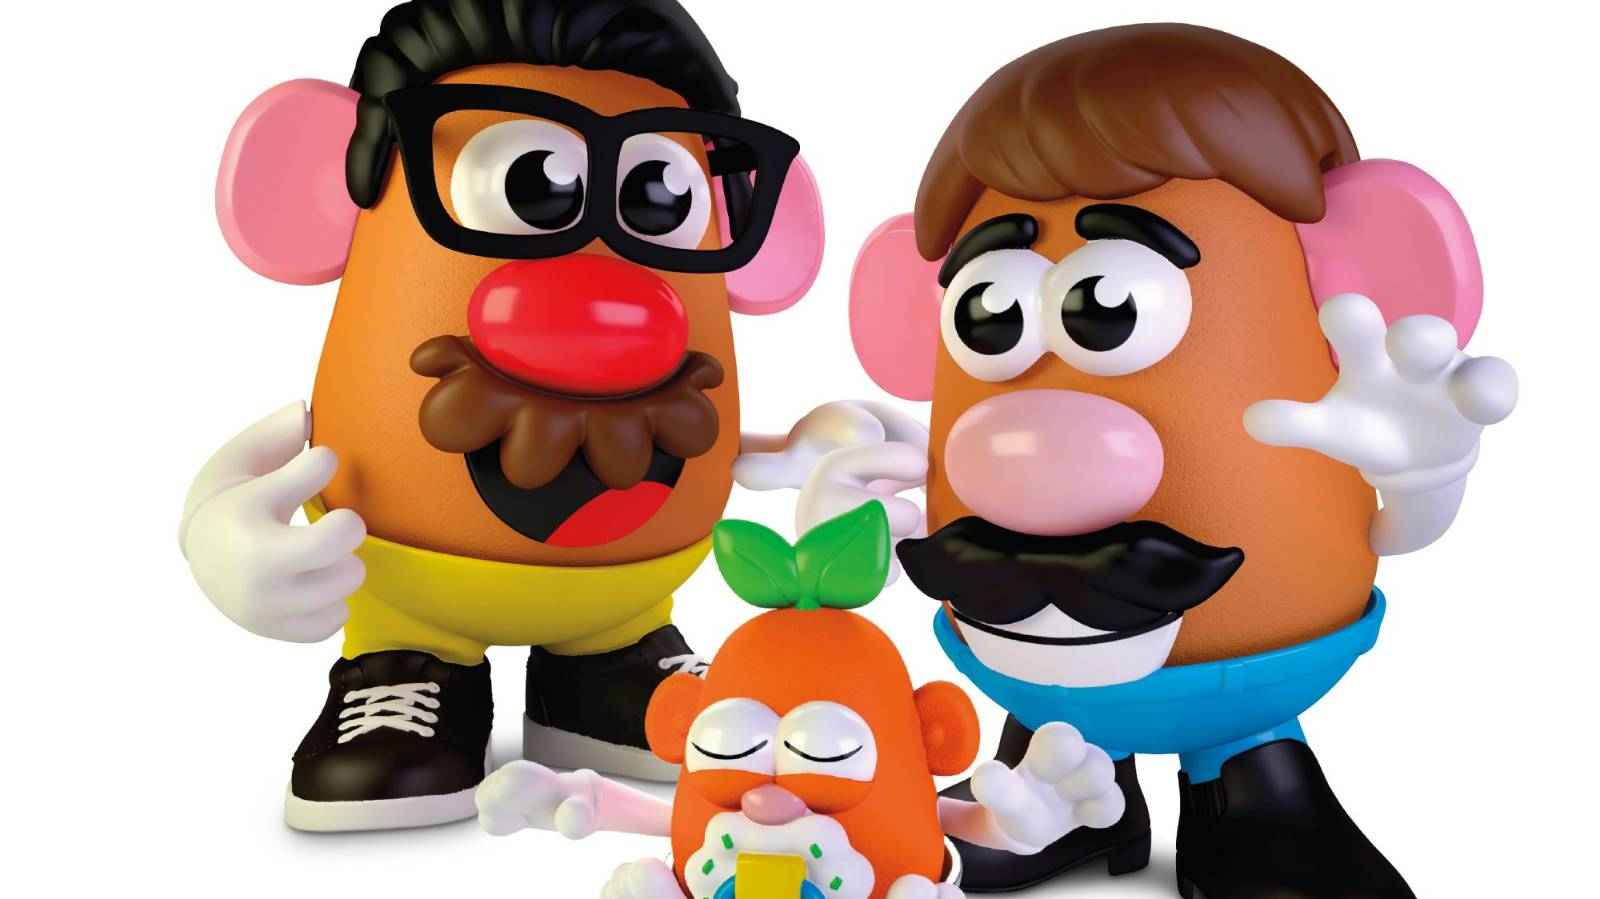 Potato Heads were never really 'Mr' anyway